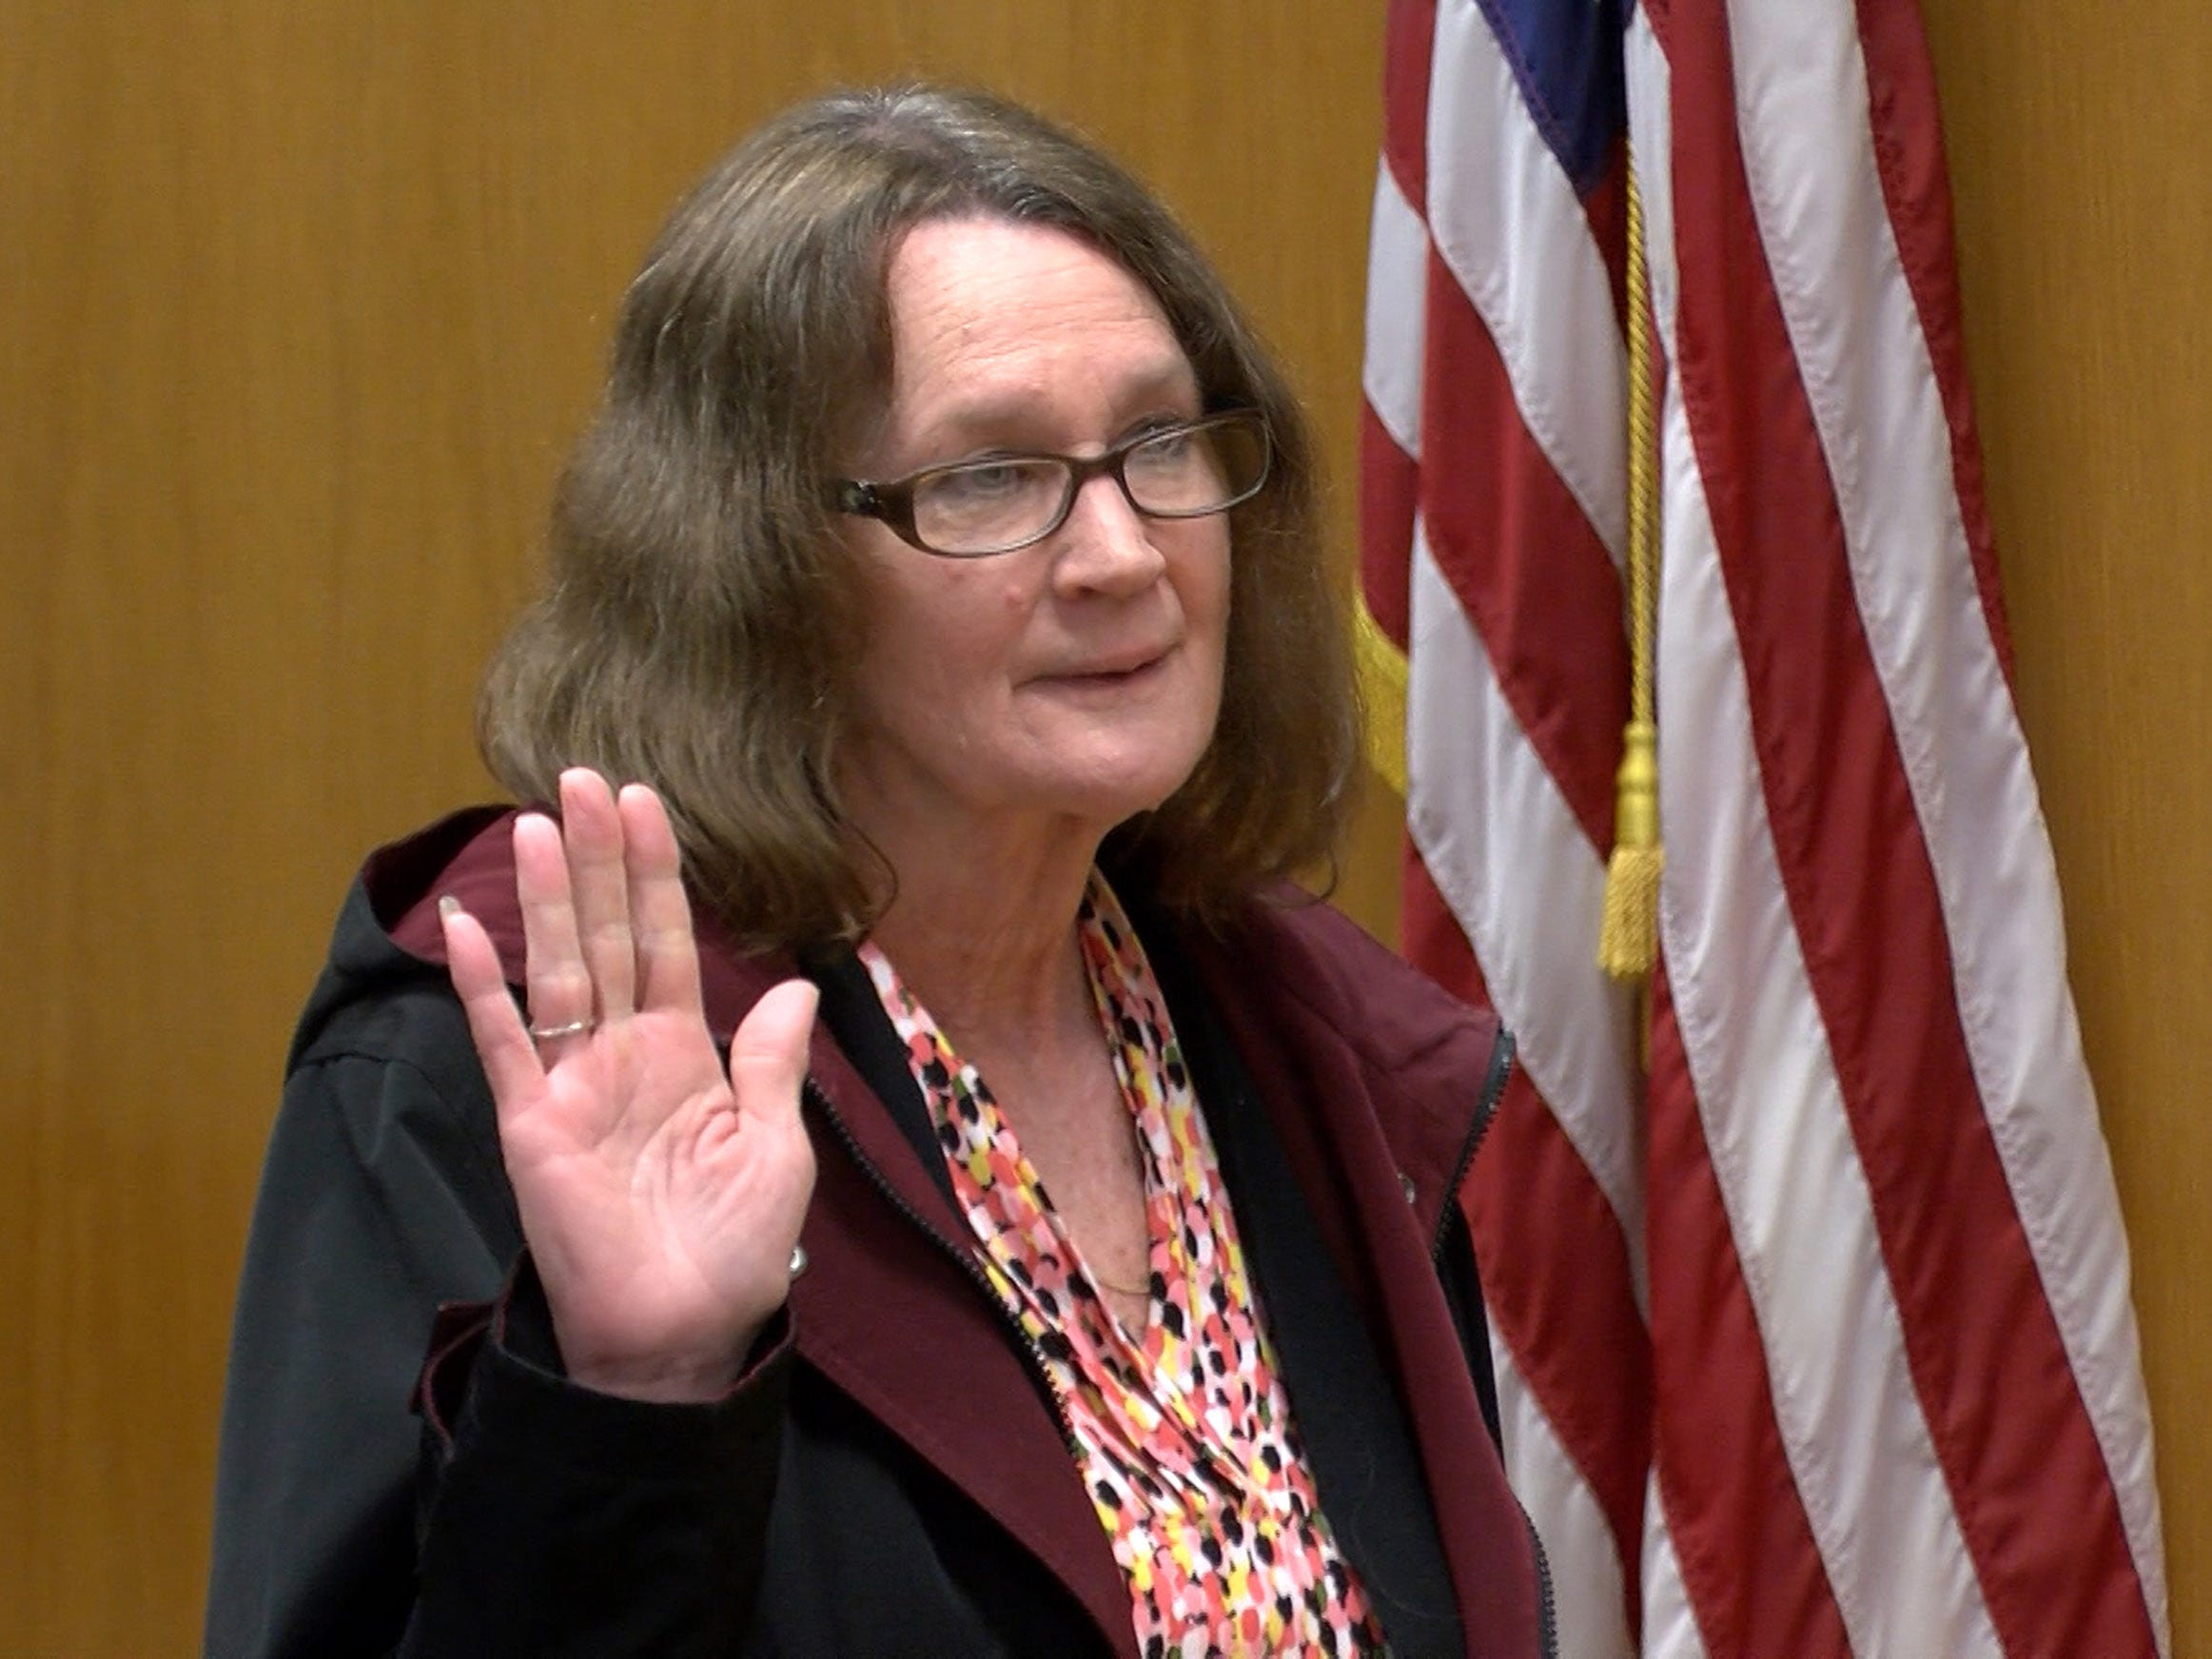 Wendy Tucker is sworn in to testity in the Justin Cherry's trial in State Superior Court in Toms River Tuesday, April 30, 2019.  Cherry, a Tuckerton police corporal, is charged with misconduct for siccing his police dog on Tucker.